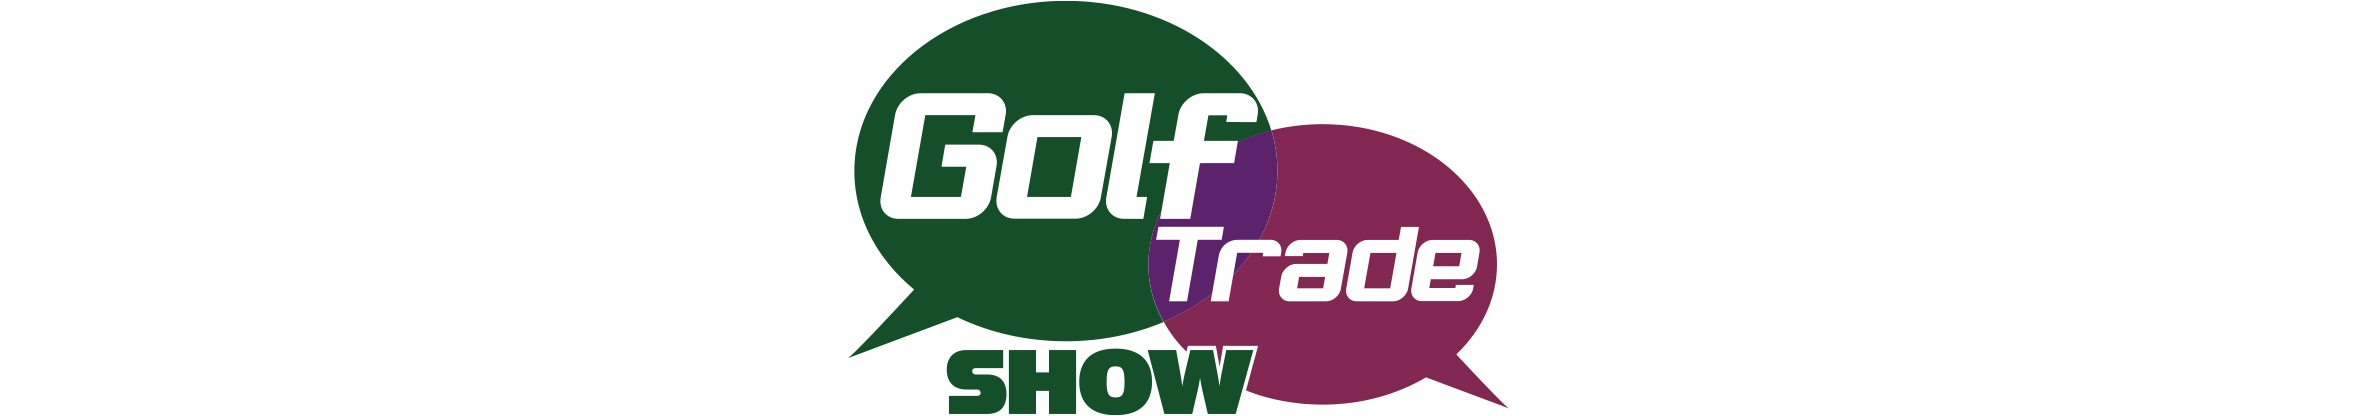 Golf Trade Show PR logo - EMAIL